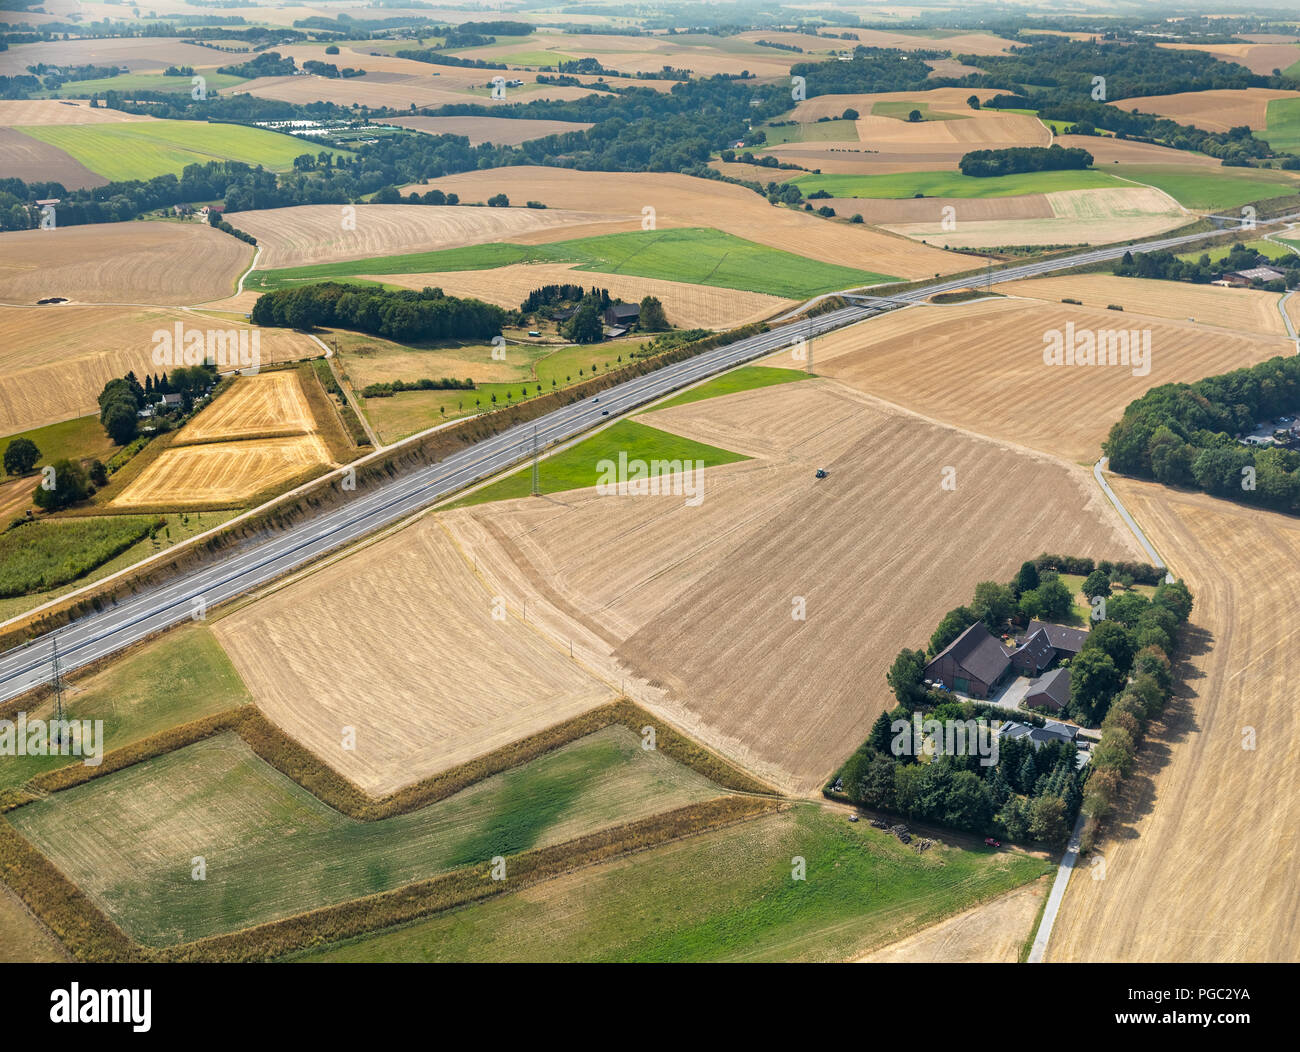 Bare fields, early harvest by drought and dryness next to the highway A44, Hetterscheidt, Holy House, Ruhr Area, Nordrhein-Westfalen, Germany, DEU, Eu - Stock Image